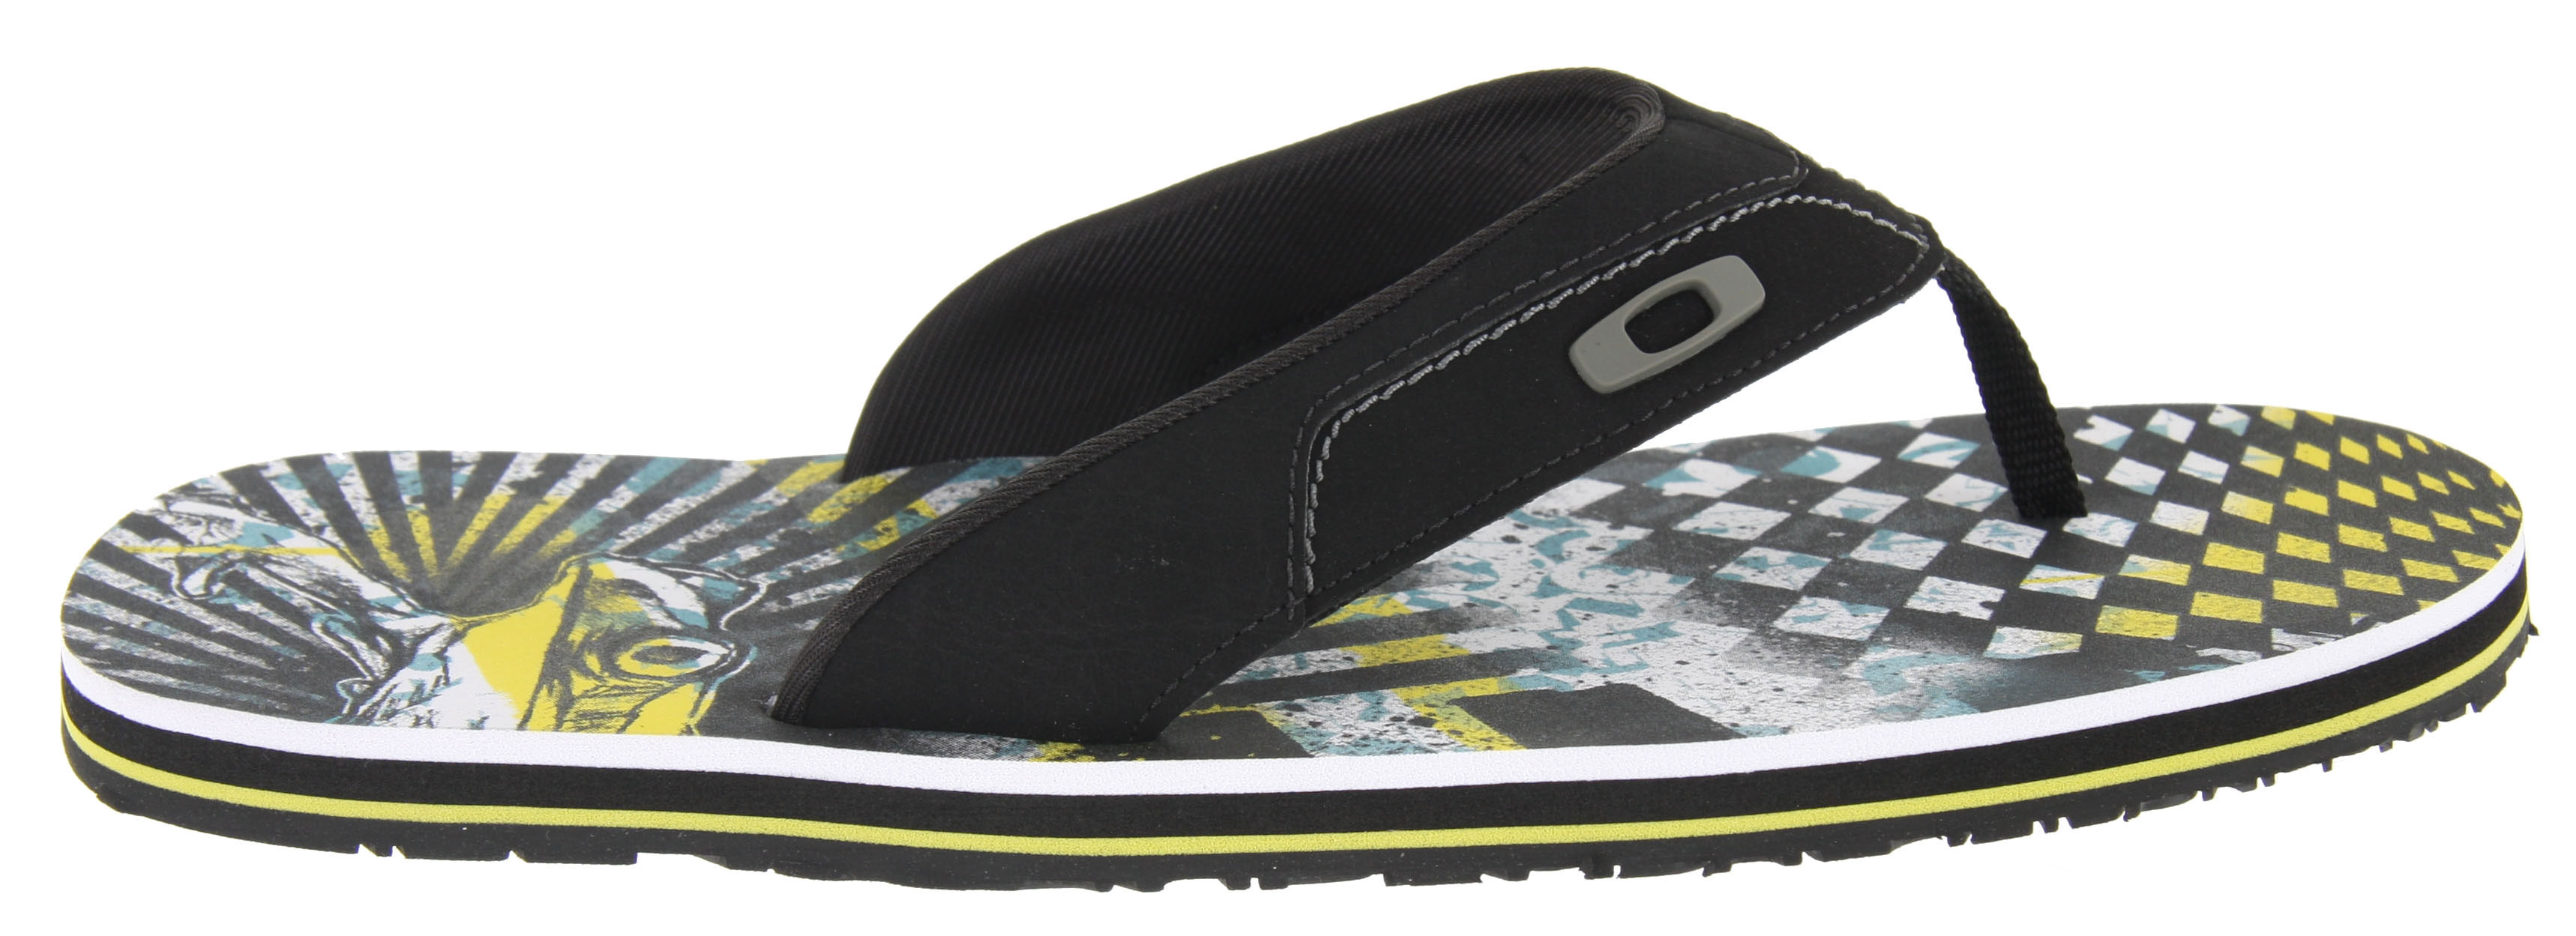 Surf If you're gearing up for a beach blitz or just looking for sandals to stoke your surfer soul, slide into a pair of Oakley O-STRAP. Oakley turned the foot bed into a work of art and took comfort to the level you deserve. EVA and RED CODE foam put plush resilience in every step. Microban treatment helps control odor, and the durable UNOBTAINIUM outsole gets a grip on Mother Earth.Key Features of the Oakley O Strap Sandals: 1.2mm synthetic microfiber upper Water-shedding textile lining with neoprene foam backing Odor control of Microban antimicrobial treatment Underfoot cushioning of die cut EVA with RED CODE foam Abrasion resistant UNOBTAINIUM rubber outsole - $18.95